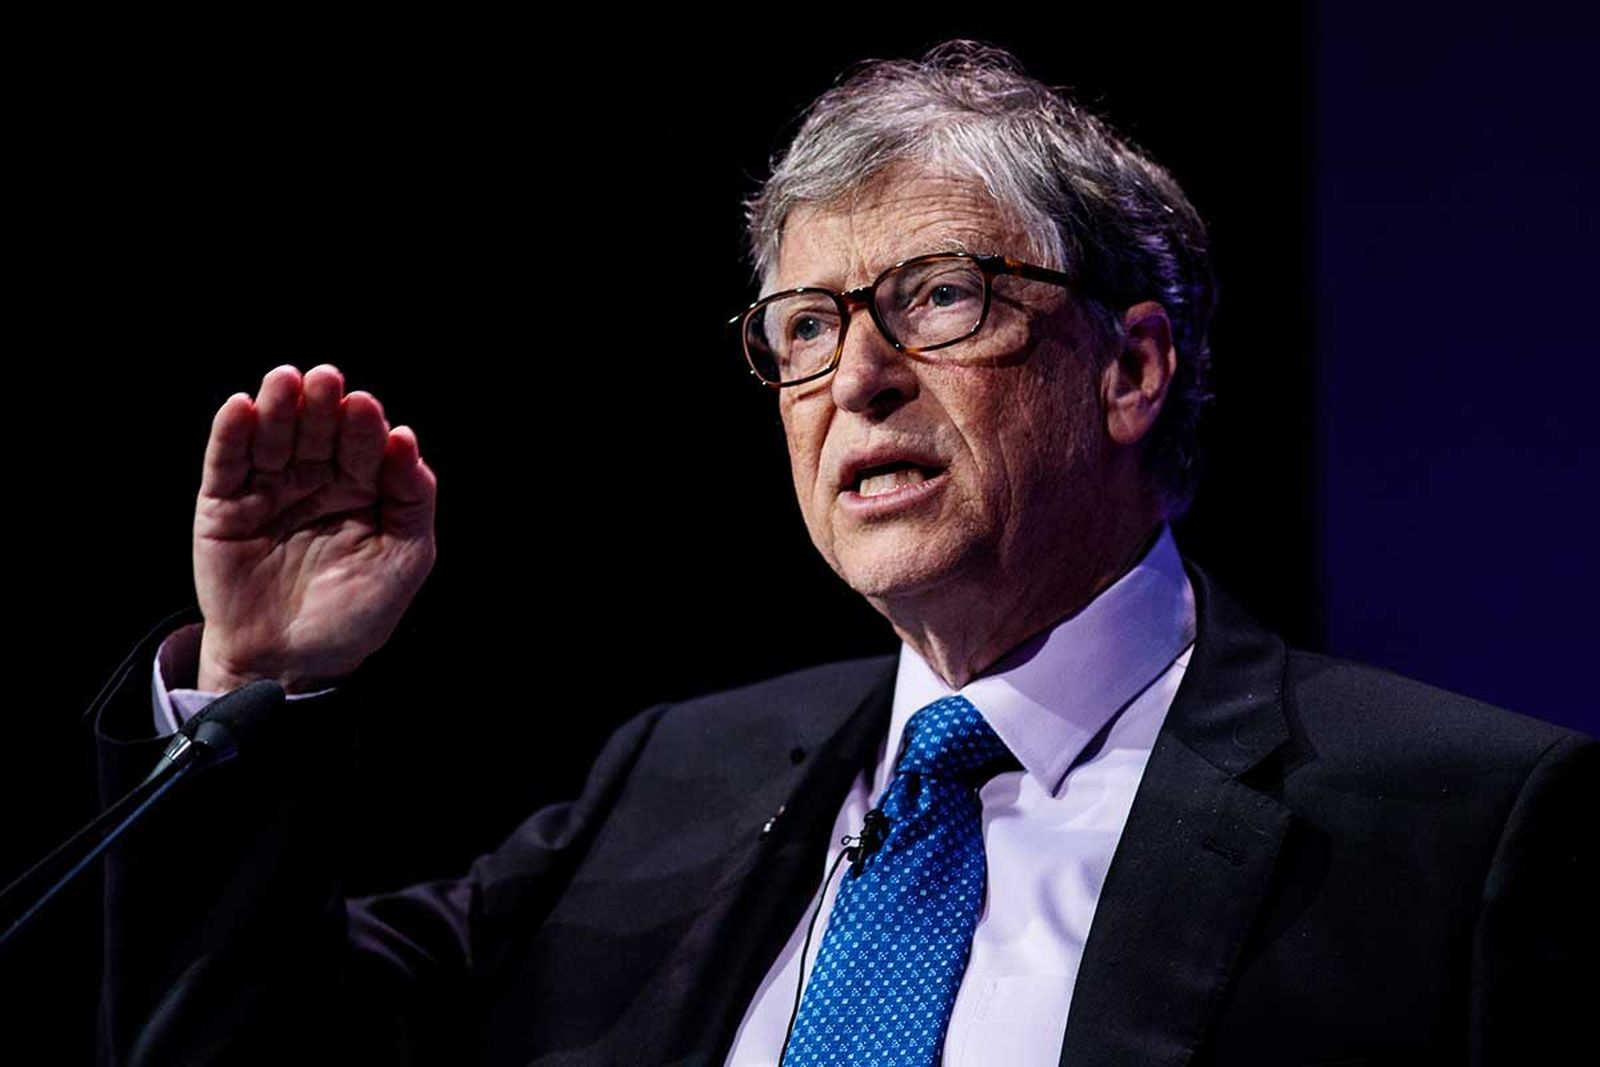 Bill Gates giving a speech on stage